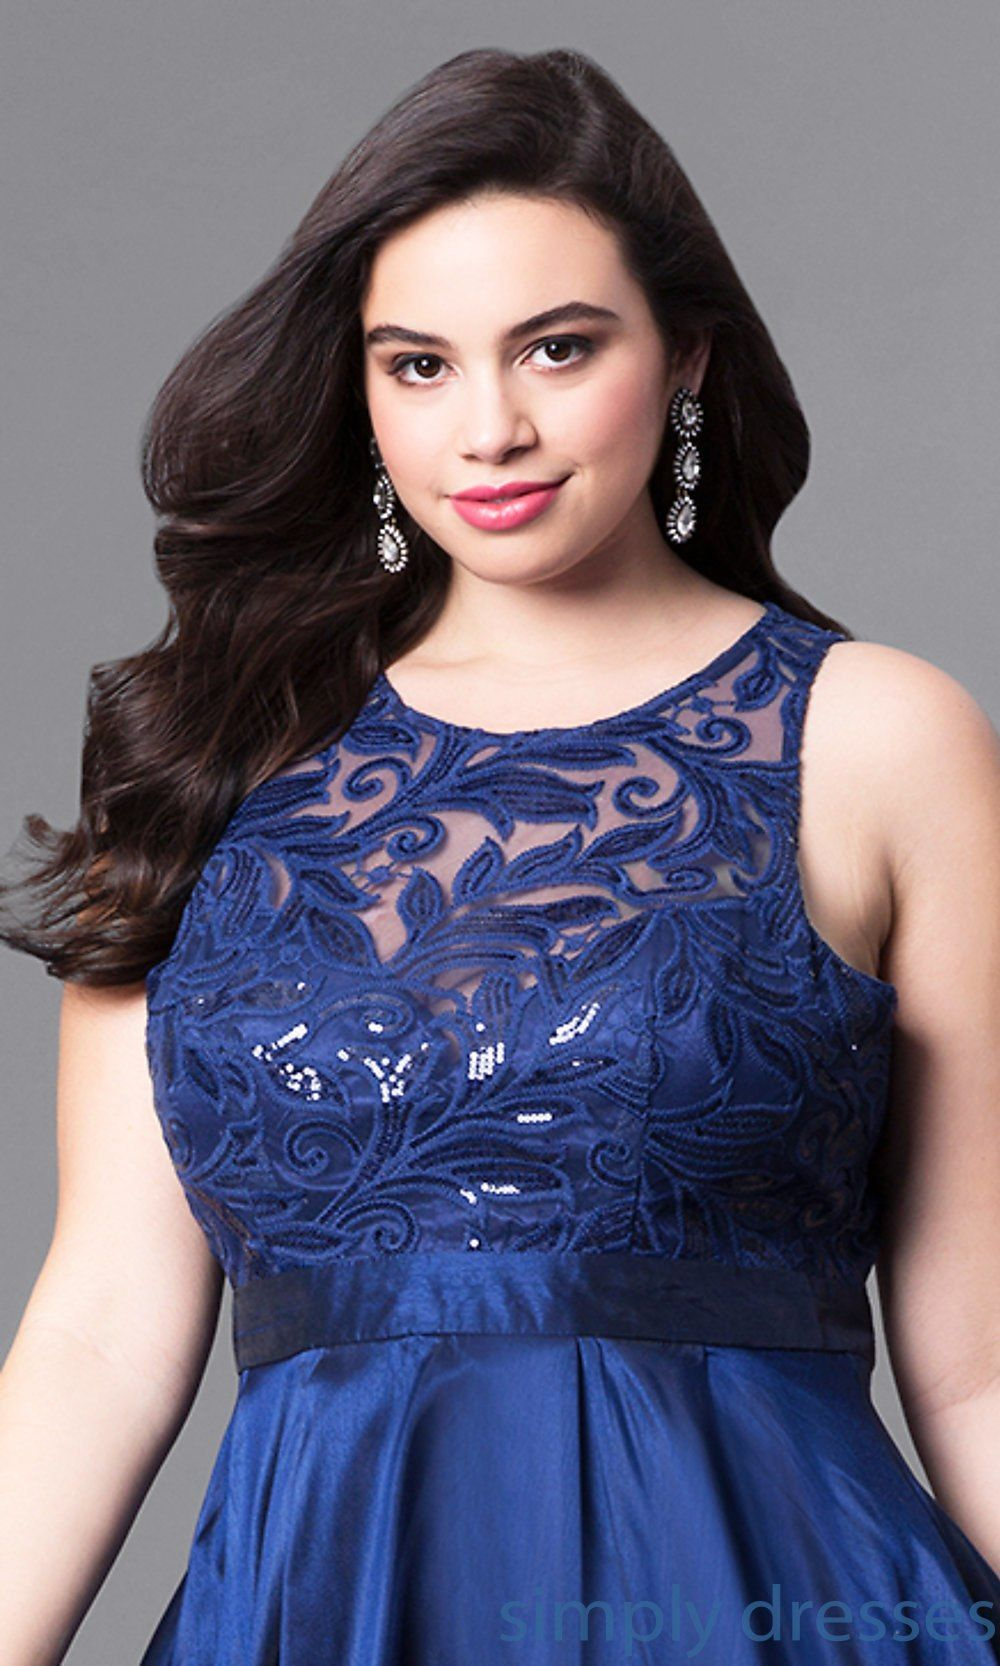 6c60e538188c3 Shop satin plus-size prom dresses at Simply Dresses. Sleeveless formal  dresses under  200 with sequined-lace bodices and layered high-low skirts.